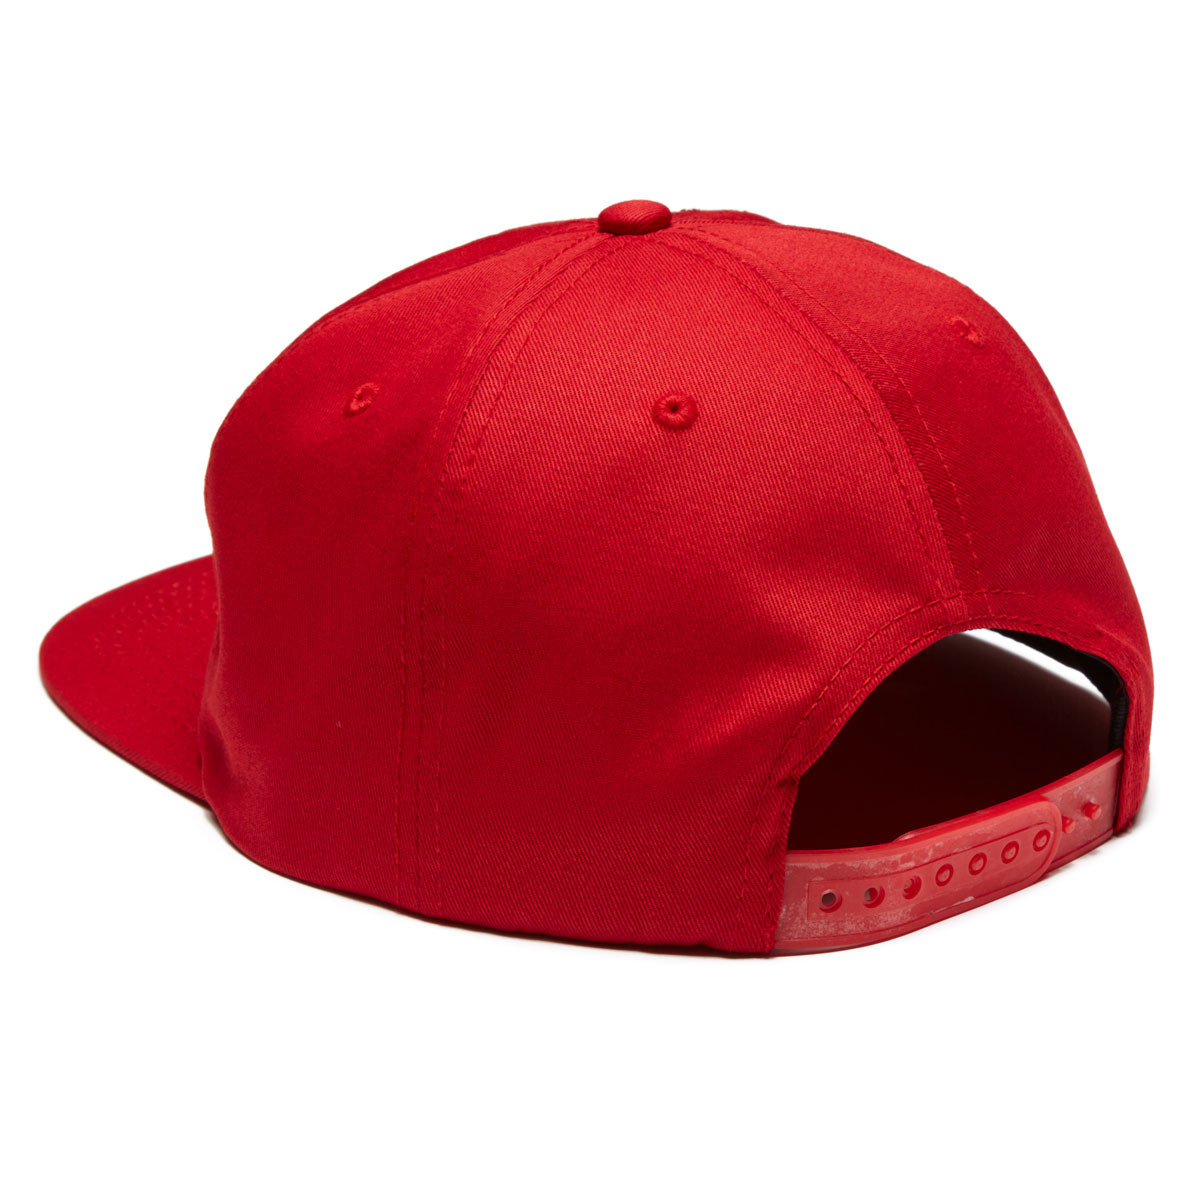 Thrasher Outlined Snapback Hat - Red 1df28ee87a9d